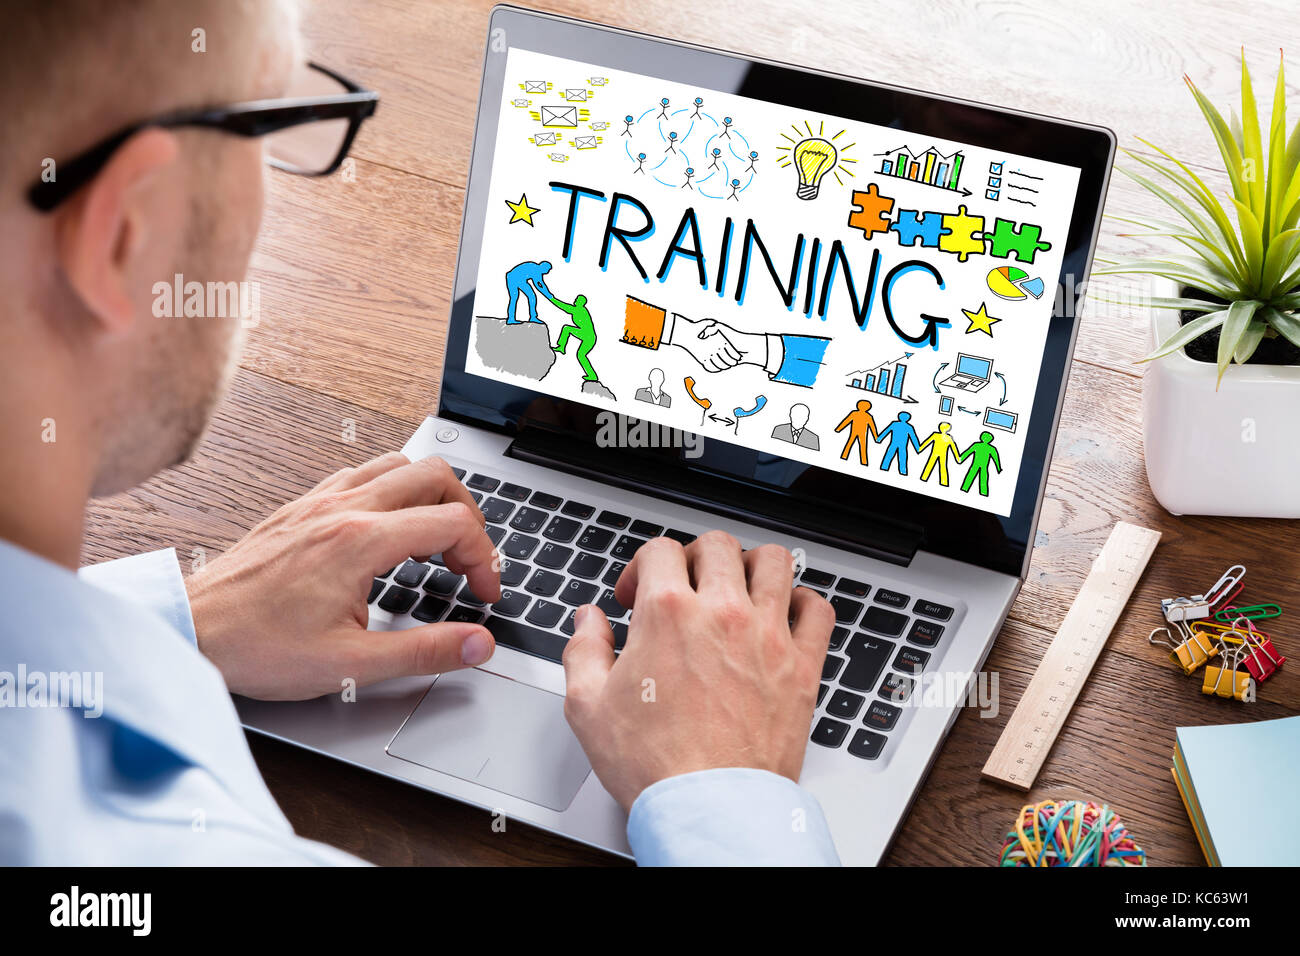 Business Person Working On A Training Concept On Laptop ...